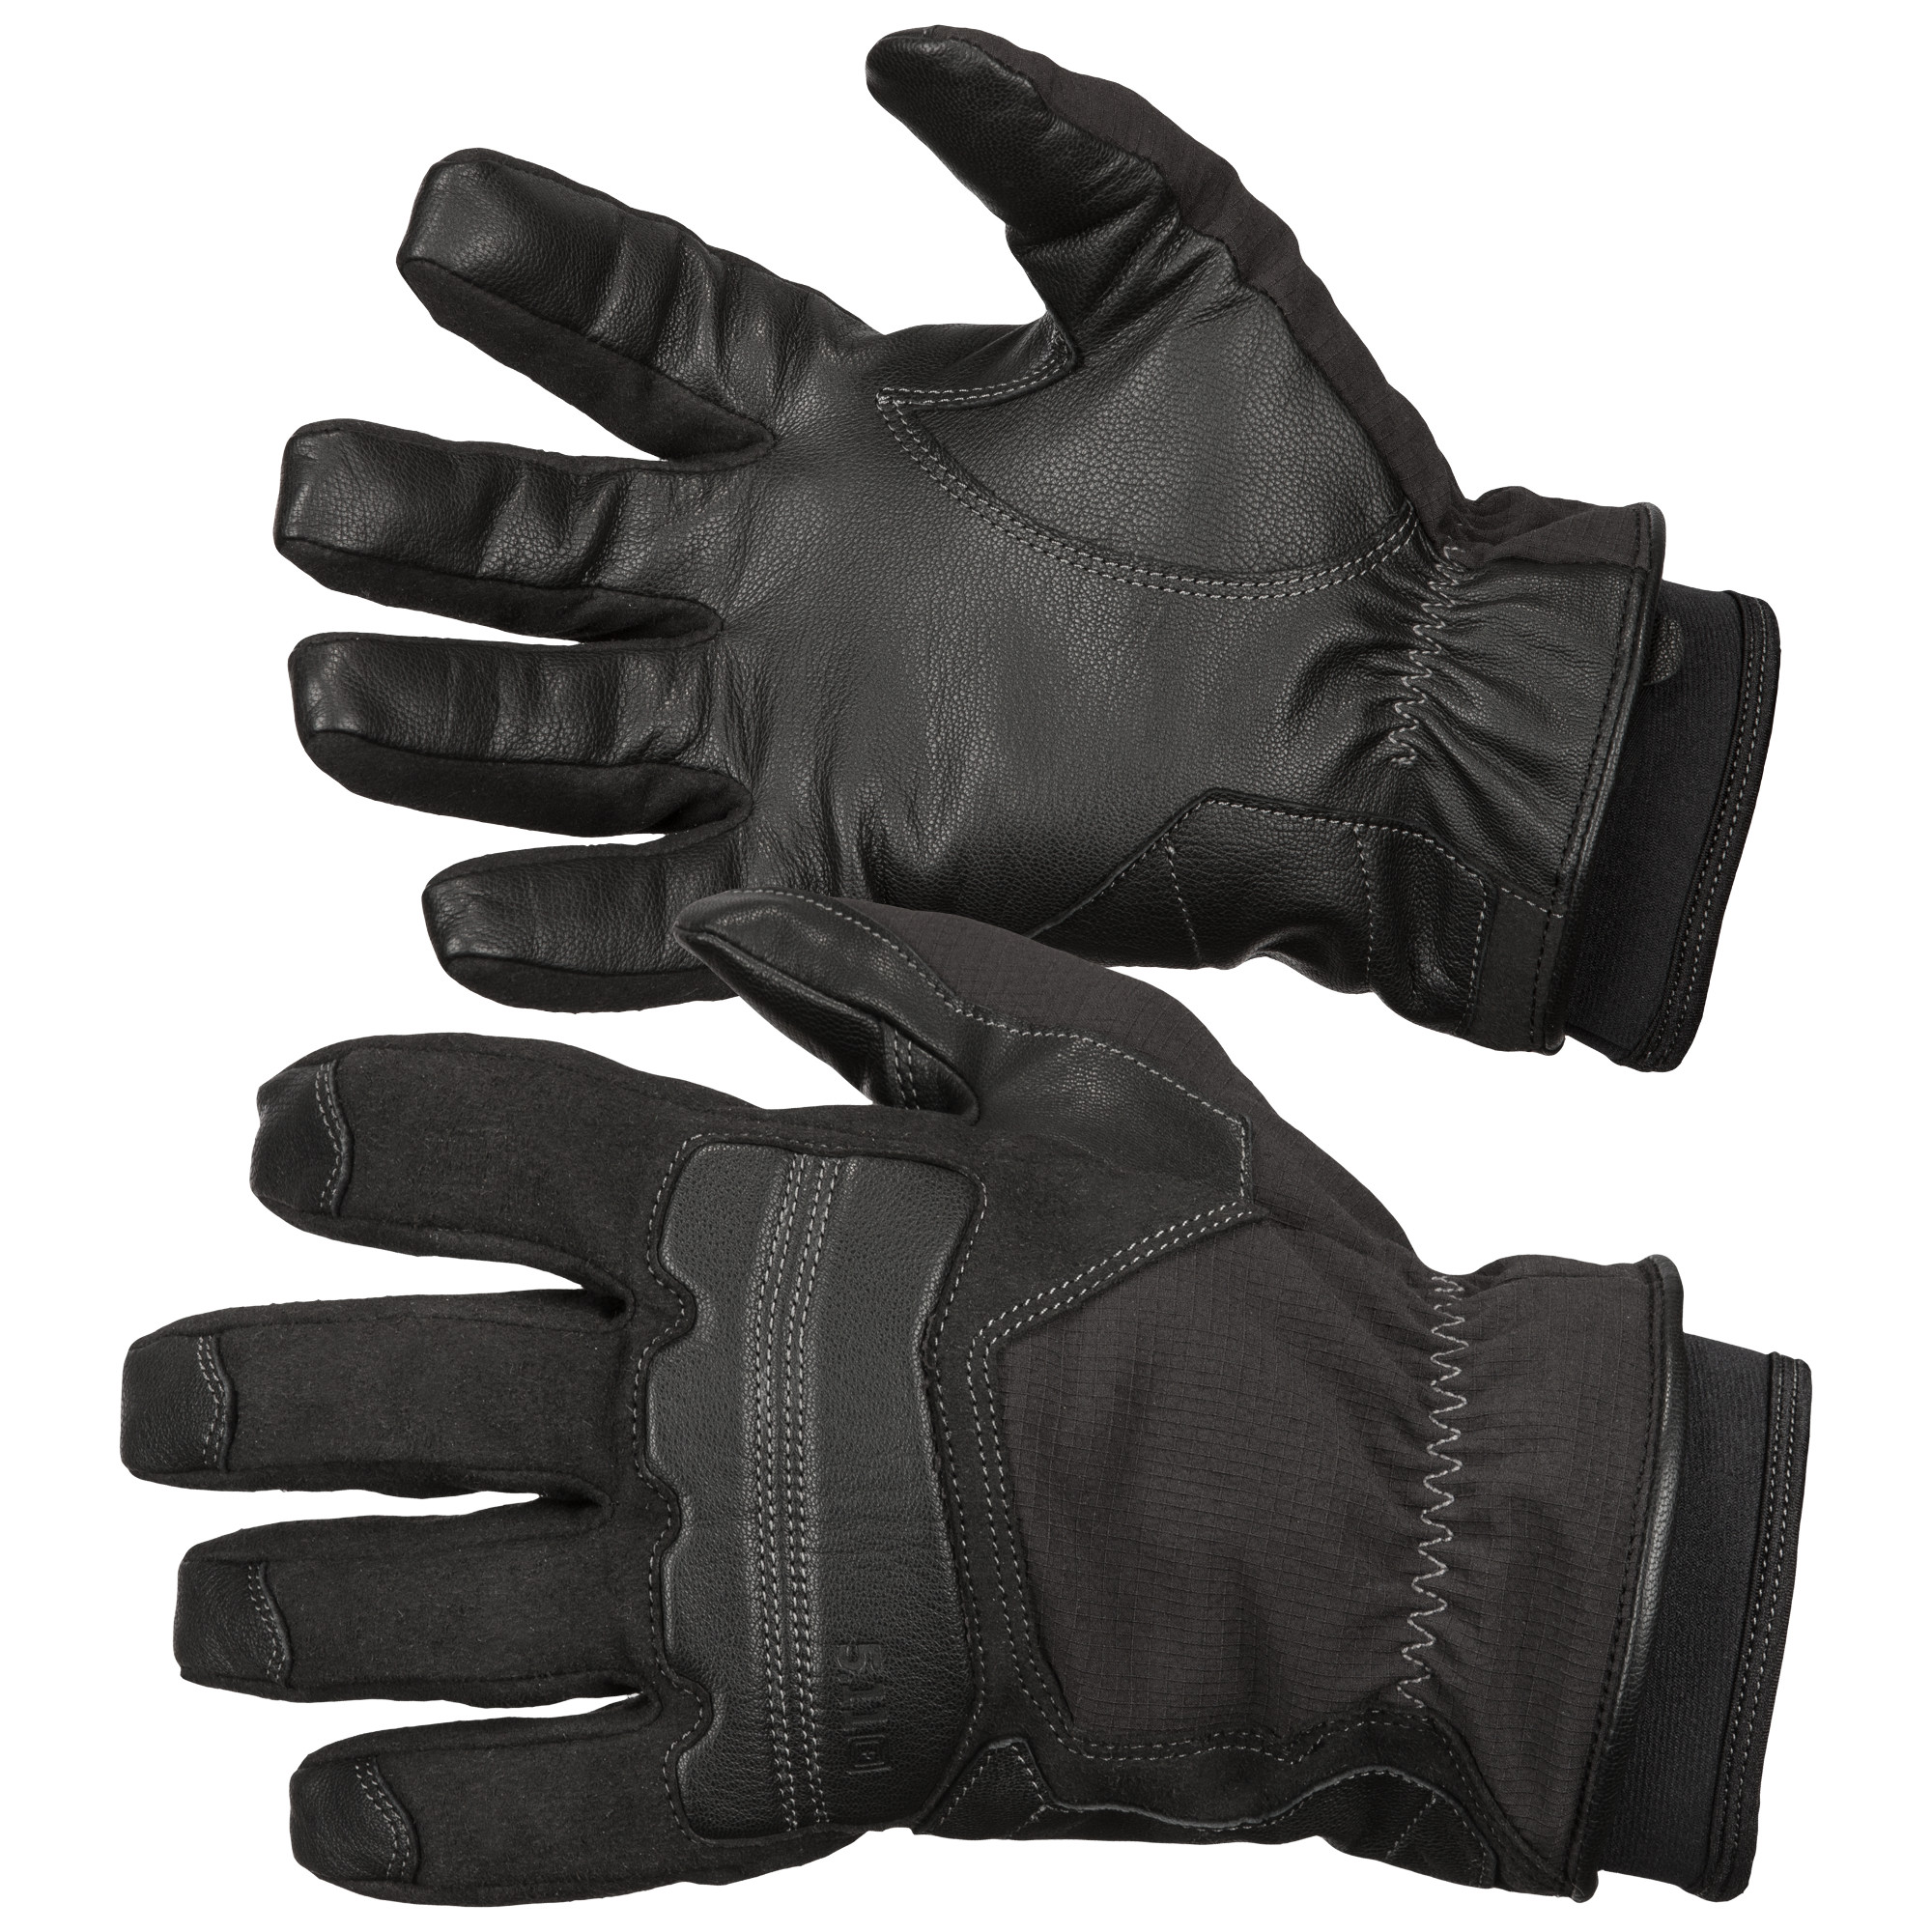 5.11 Tactical Men's Caldus Insulated Glove (Black) thumbnail